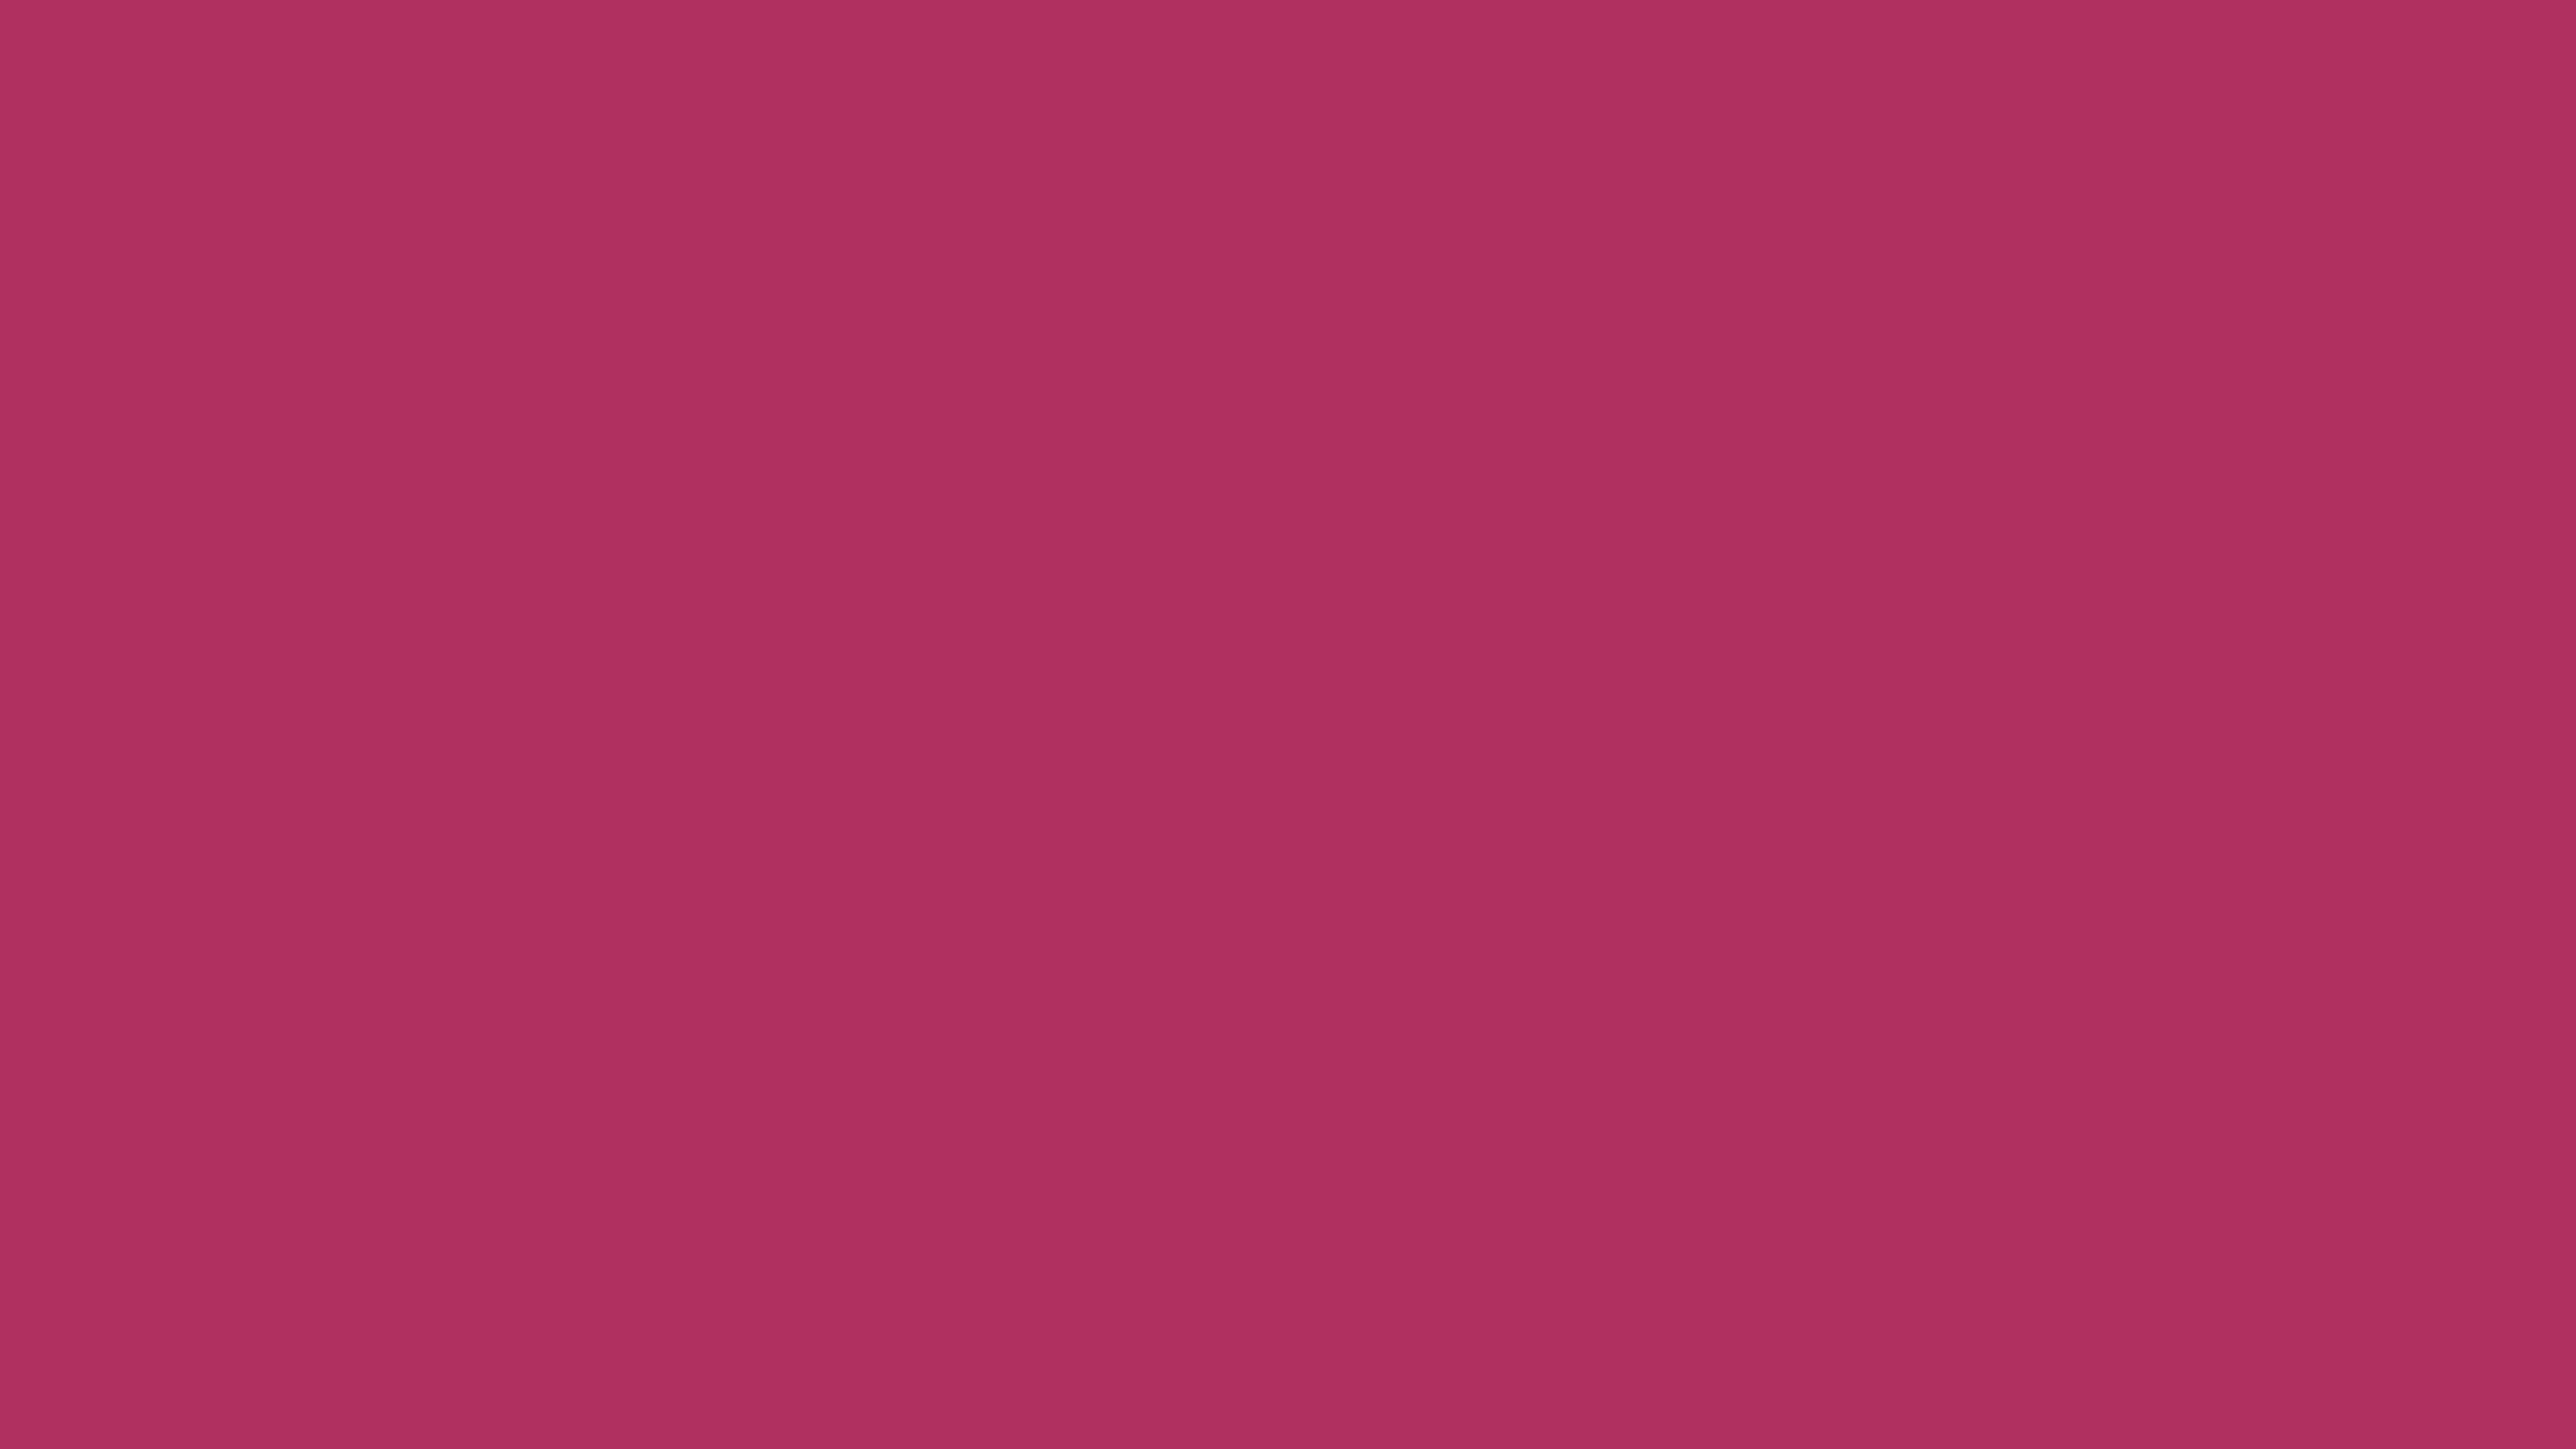 3840x2160 Rich Maroon Solid Color Background